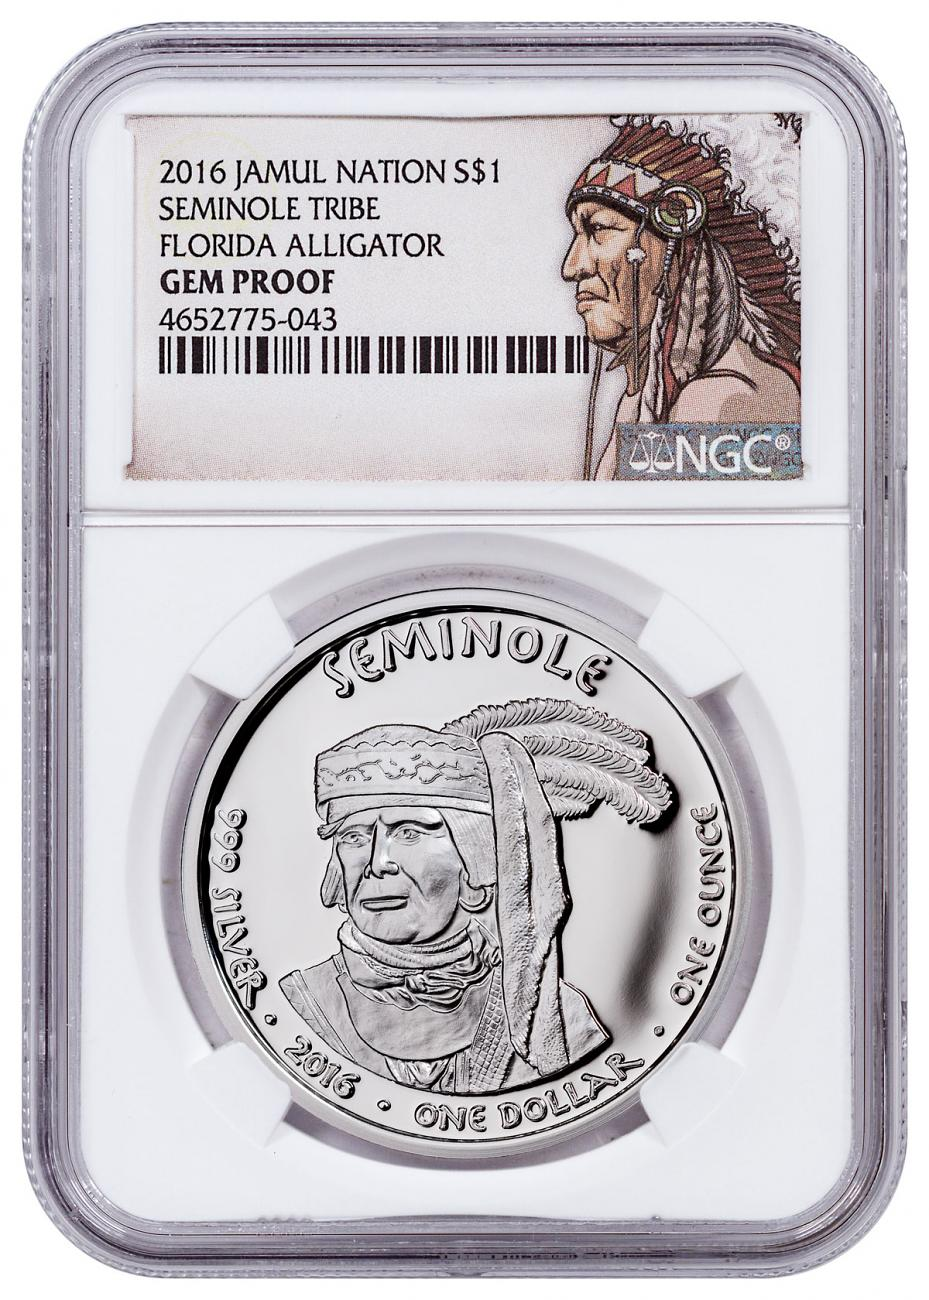 2016 Native American Silver Dollar - Florida Seminole - Alligator 1 oz Silver Proof Coin NGC GEM Proof Native American Label